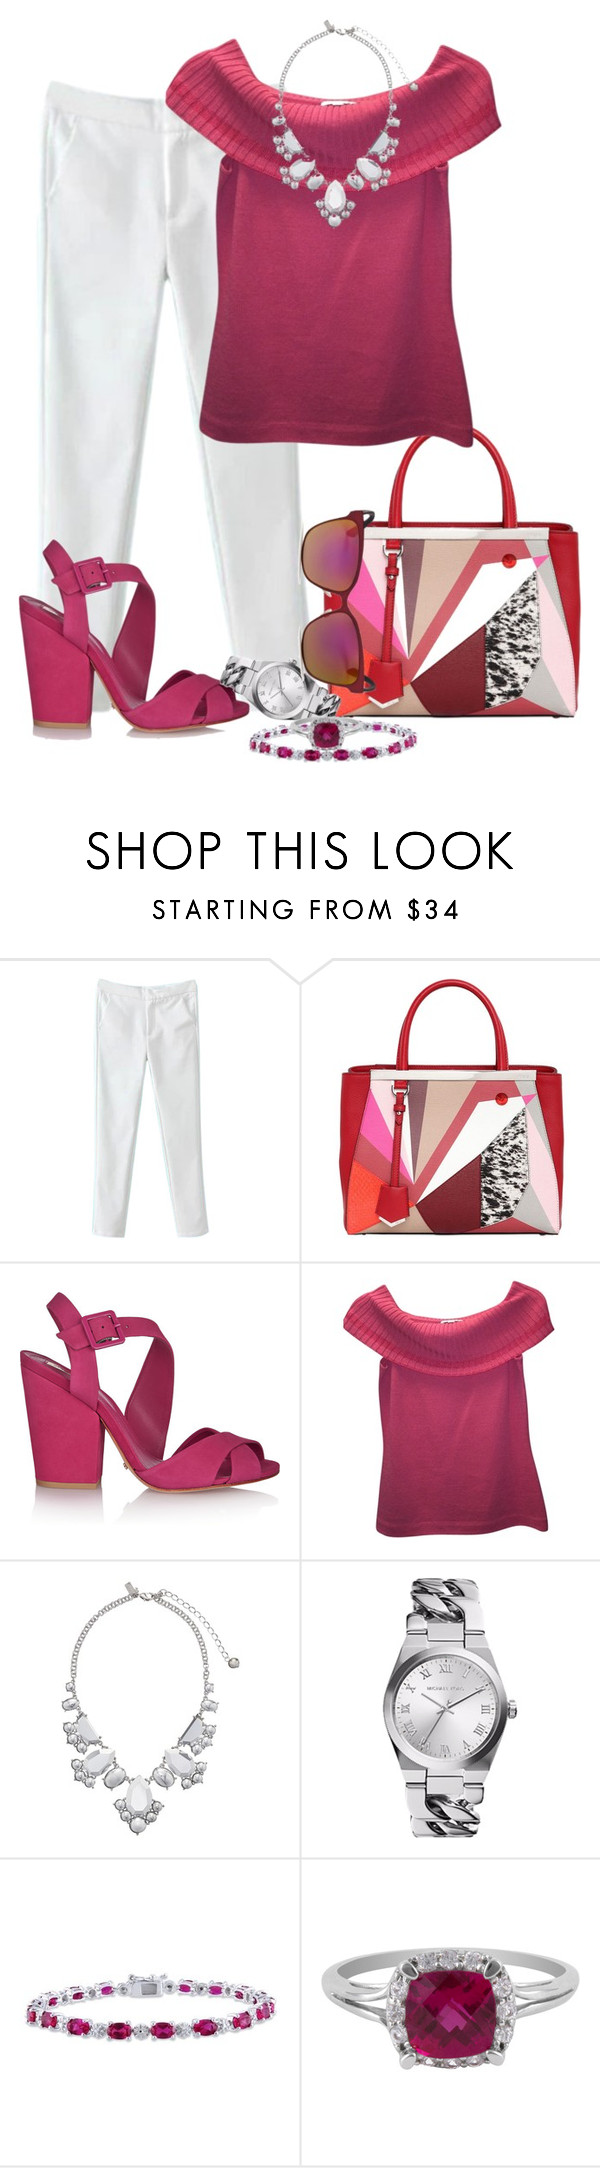 """""""Fushia"""" by sugerpop ❤ liked on Polyvore featuring Fendi, Schutz, St. John, Kate Spade, Amour, Jewel Exclusive and Jimmy Choo"""